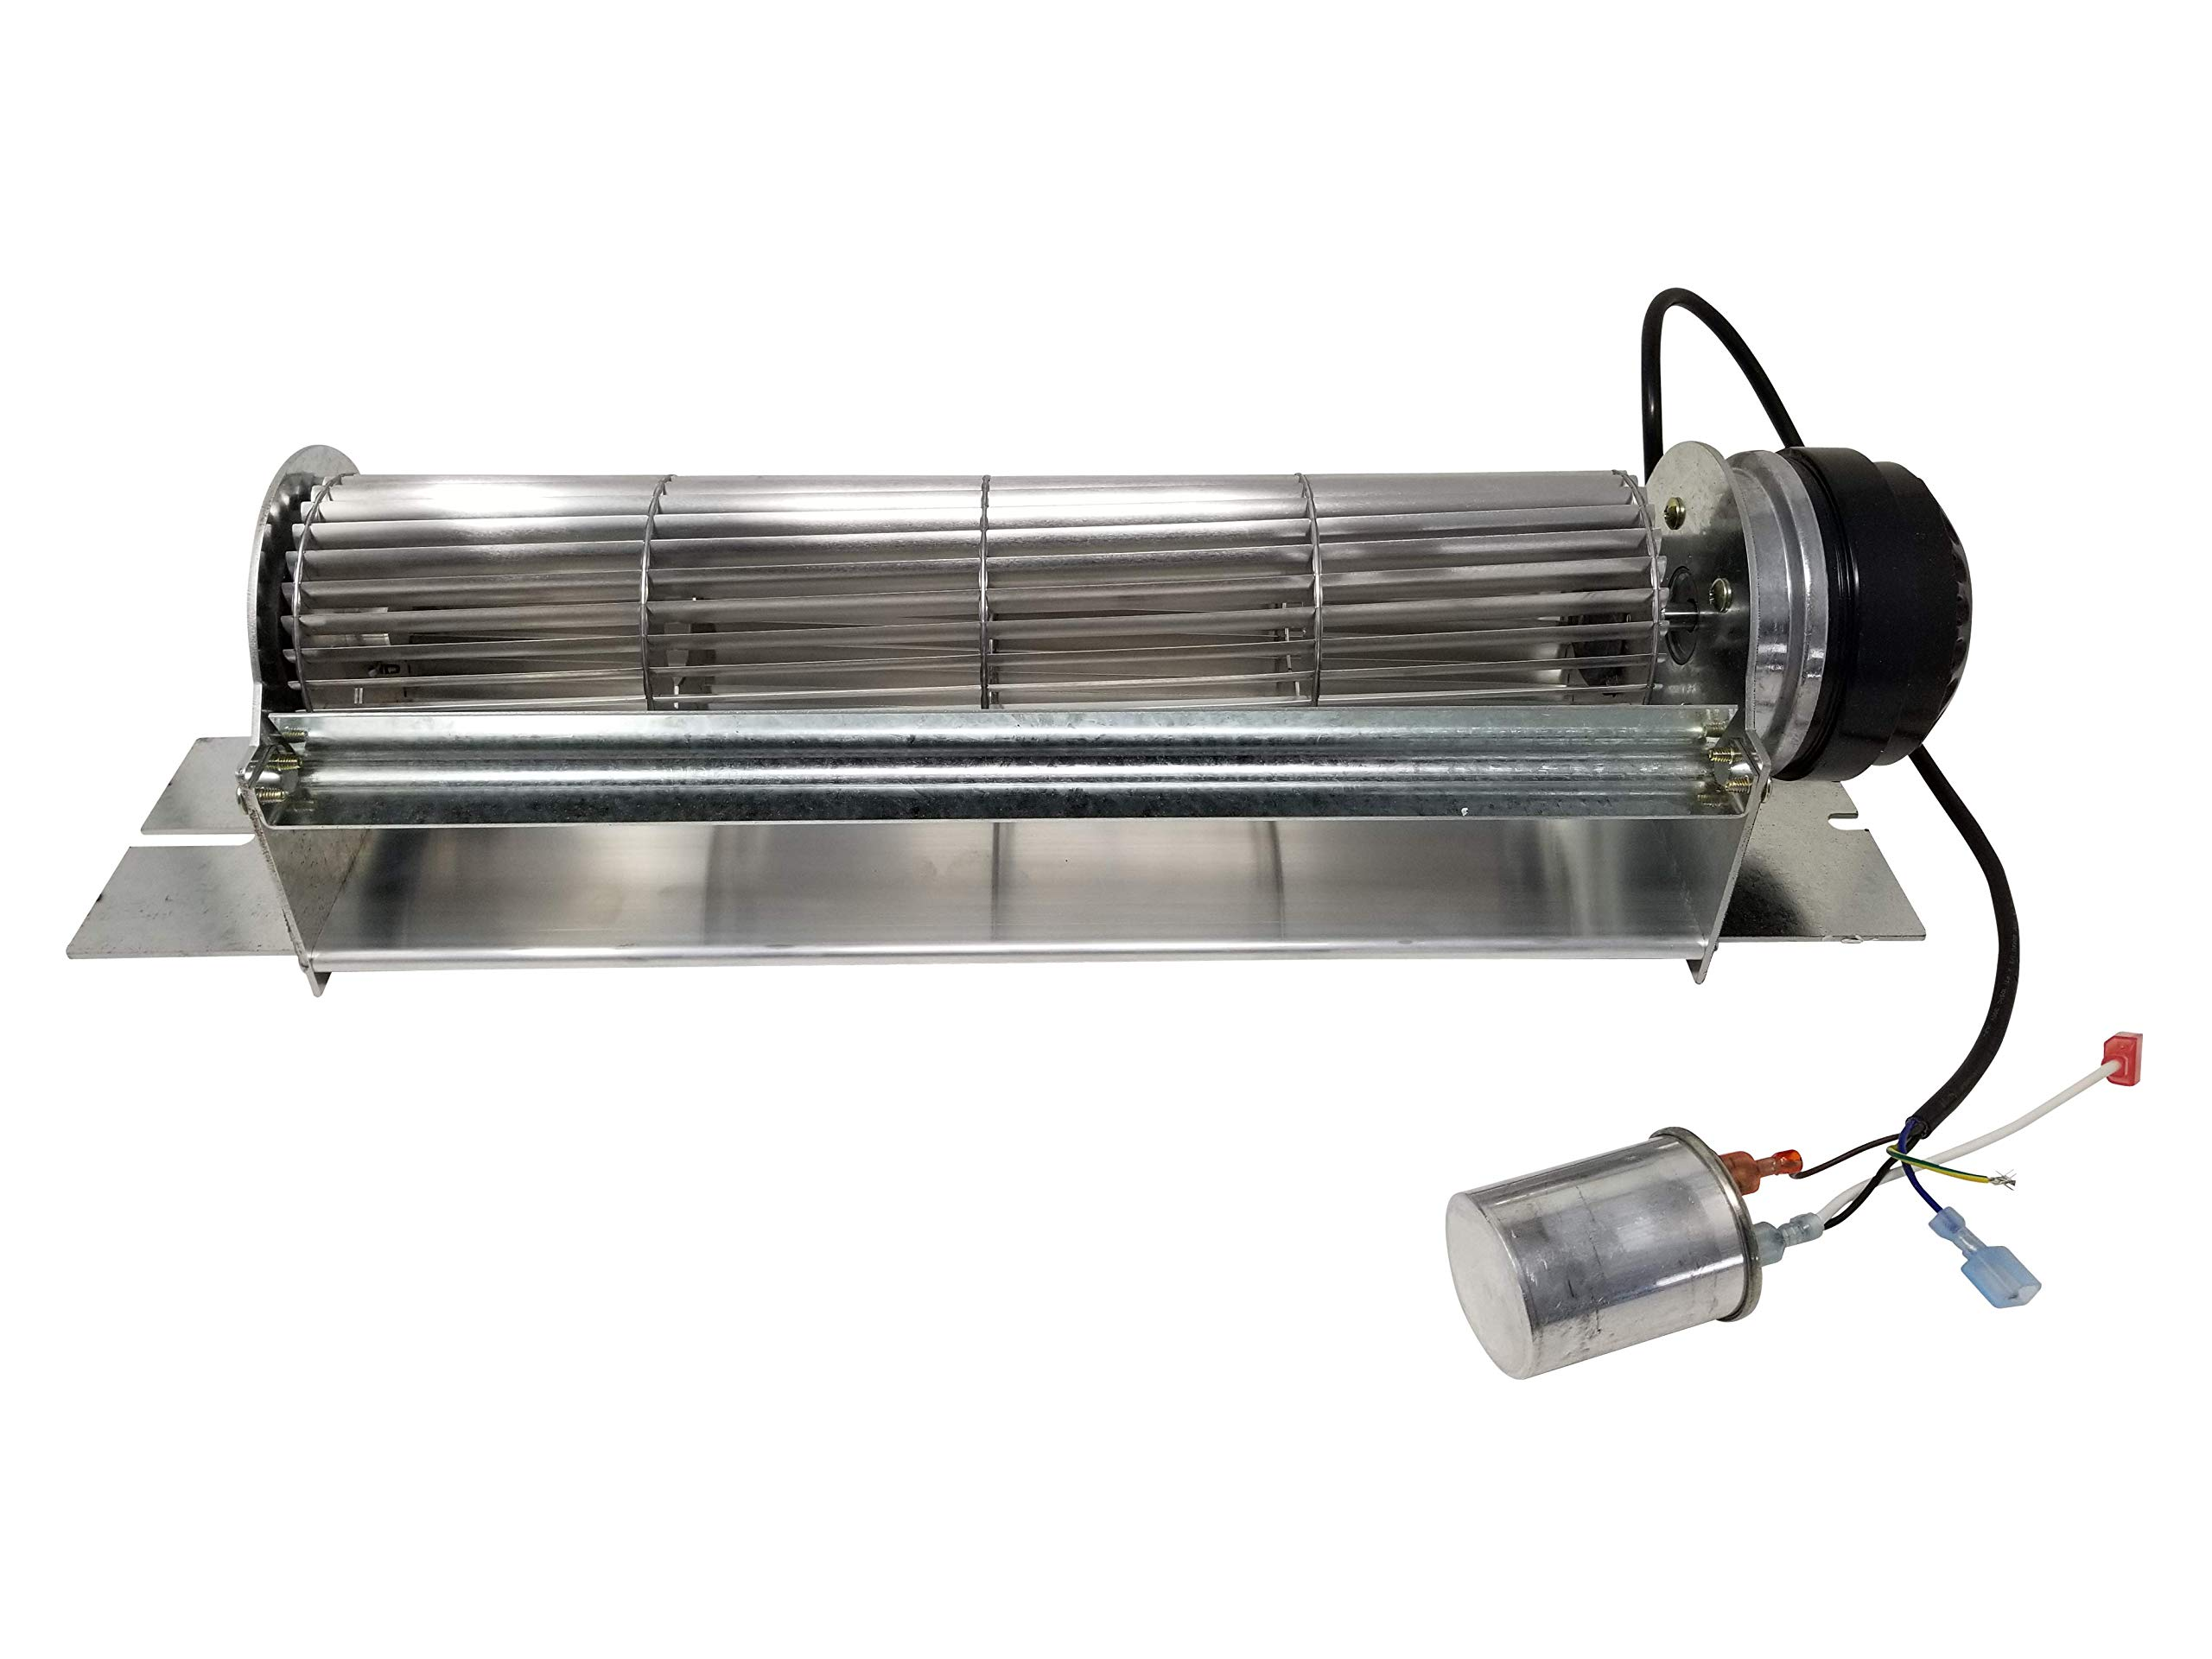 Enviro Convection Blower for The M55, Part #50-2481. Also Fits Vista Flame VF55 & Regency GC60 by Enviro